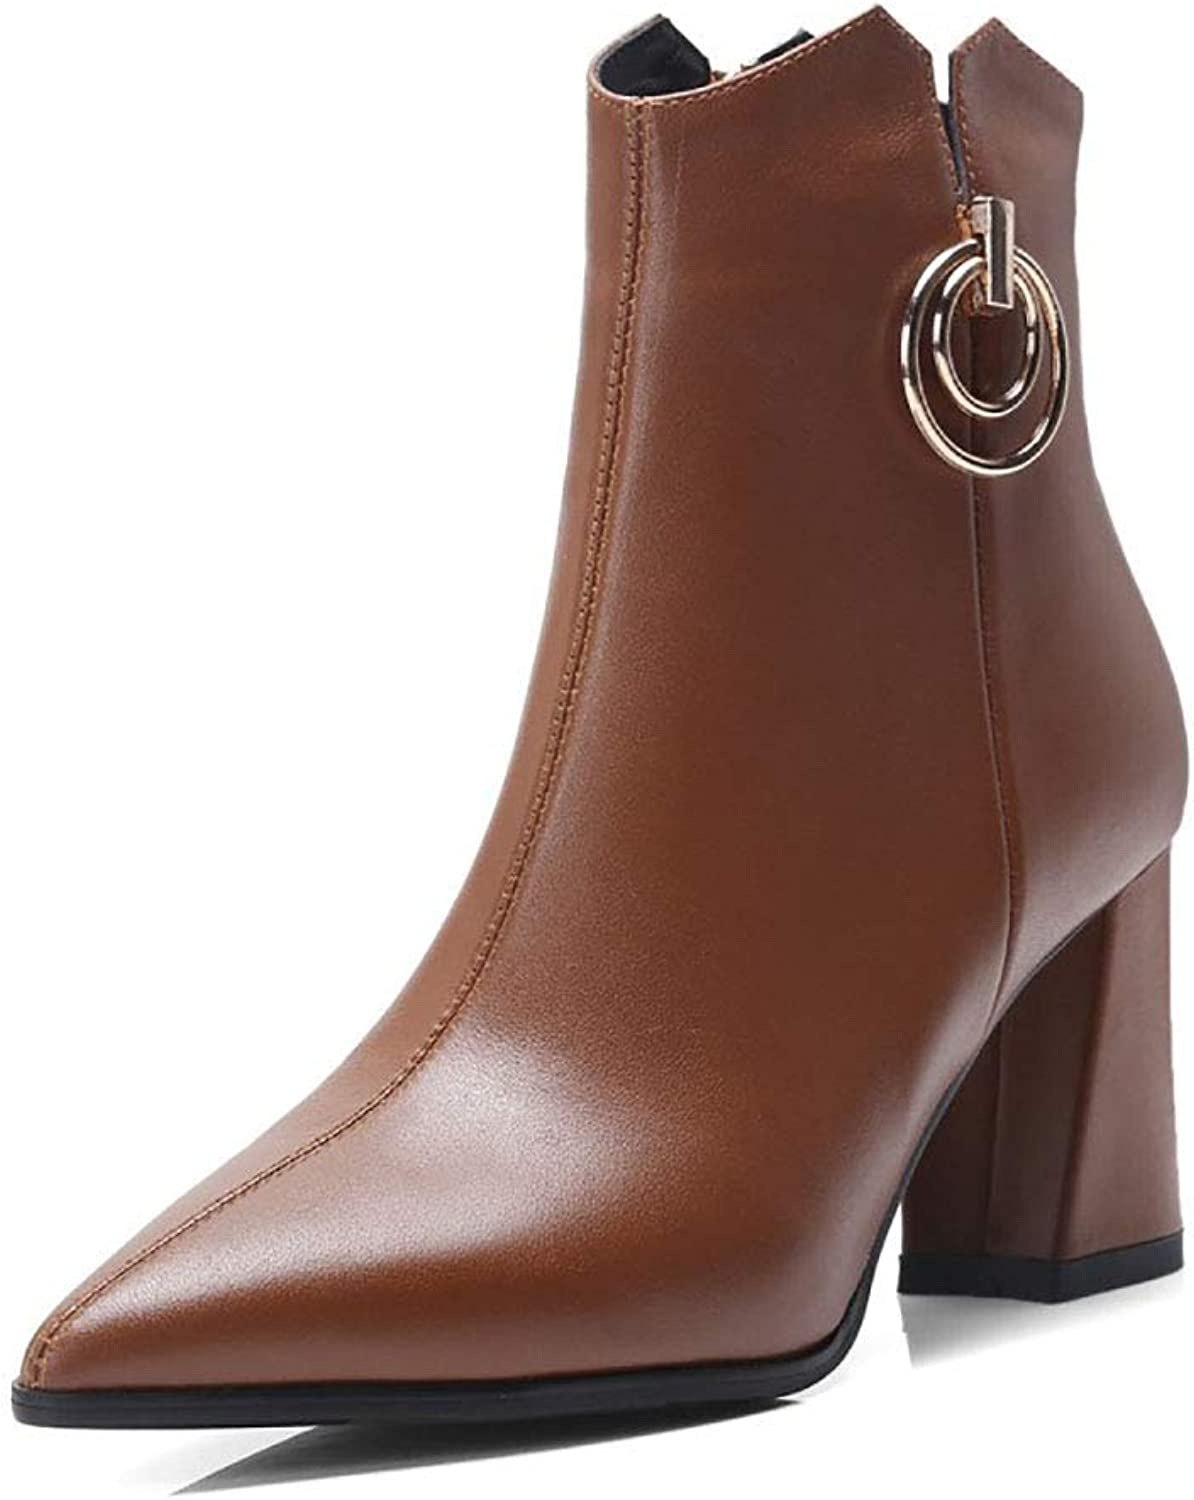 Women's Booties Leather Fleece Lined Pointed Thick high Heel Martin Boots Side Zipper Metal Decorative Ankle Boots Winter